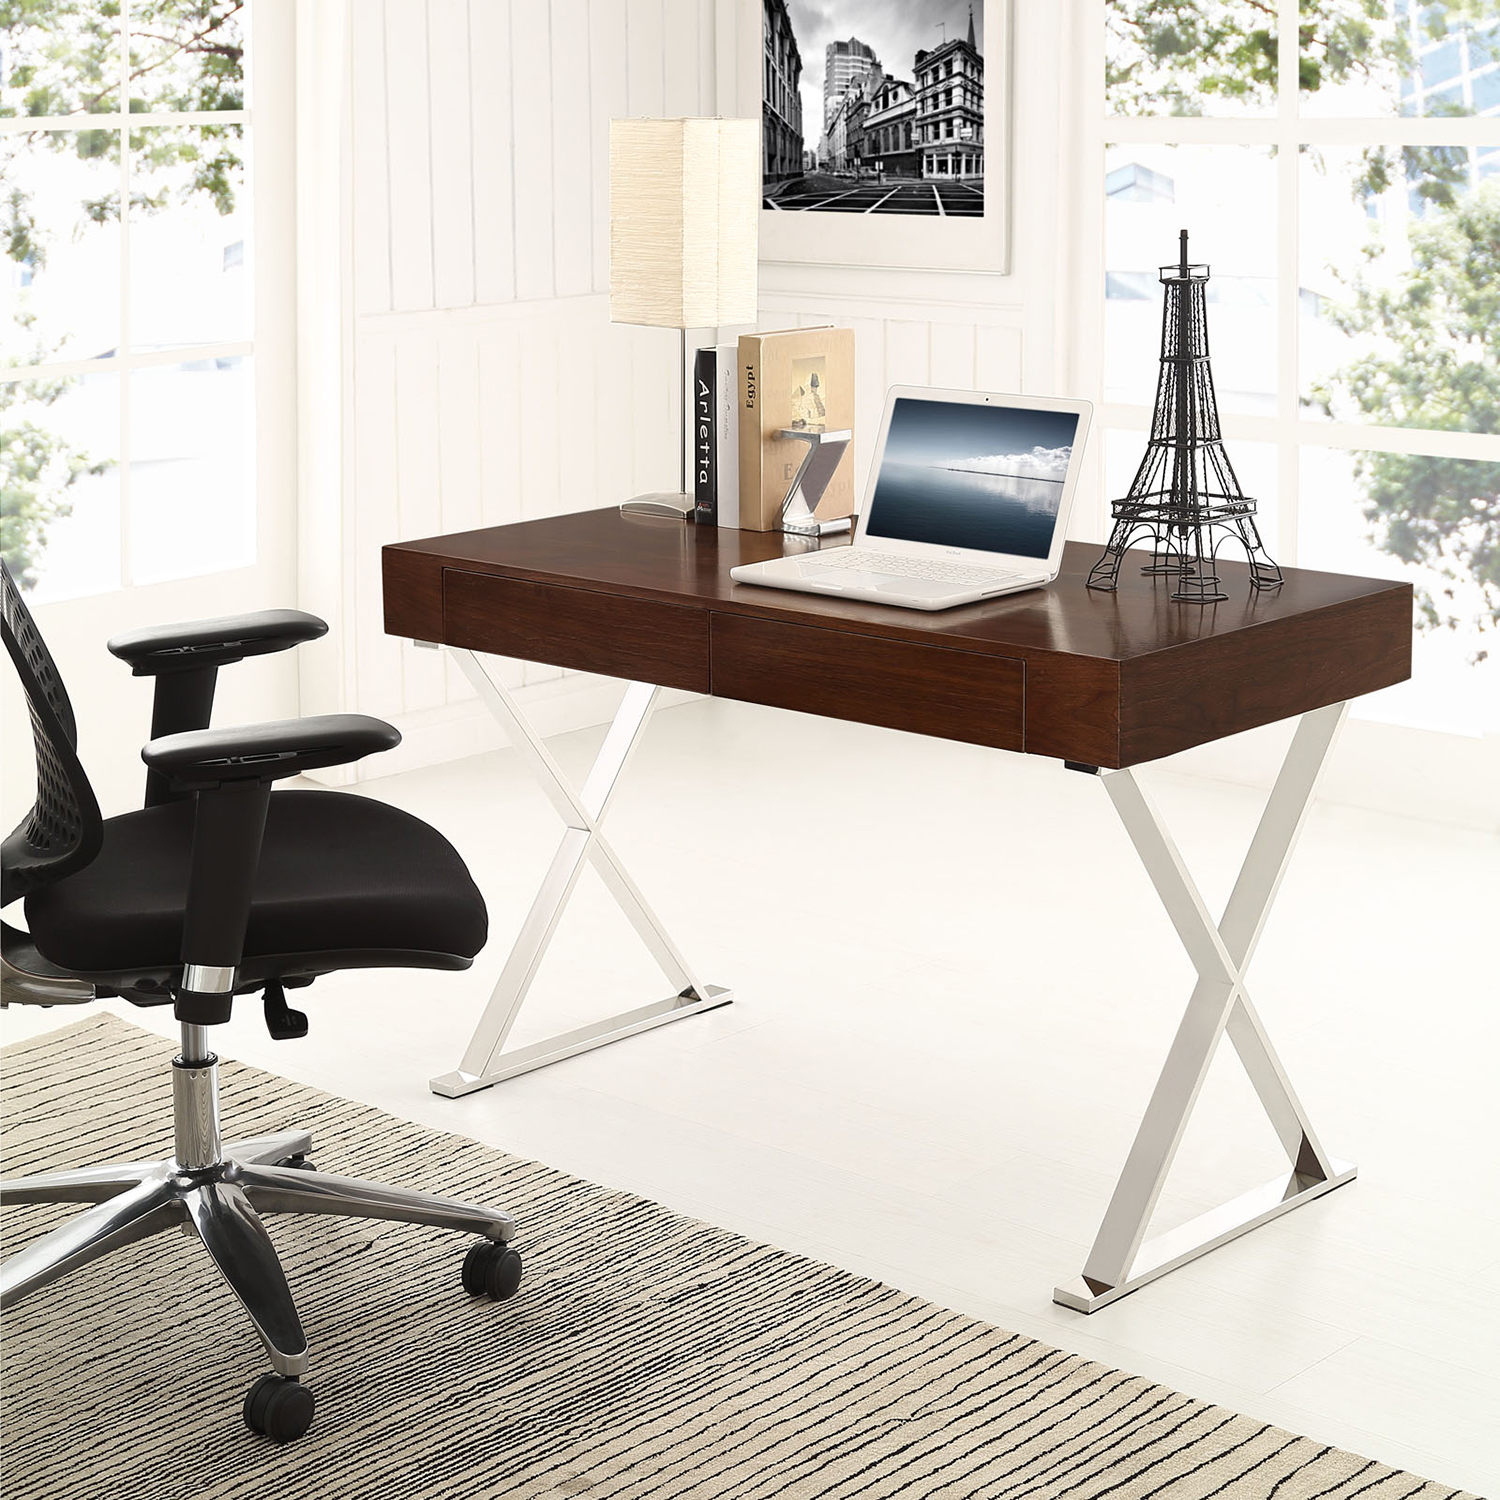 Sector Rectangular Office Desk - Walnut - EEI-1183-WAL